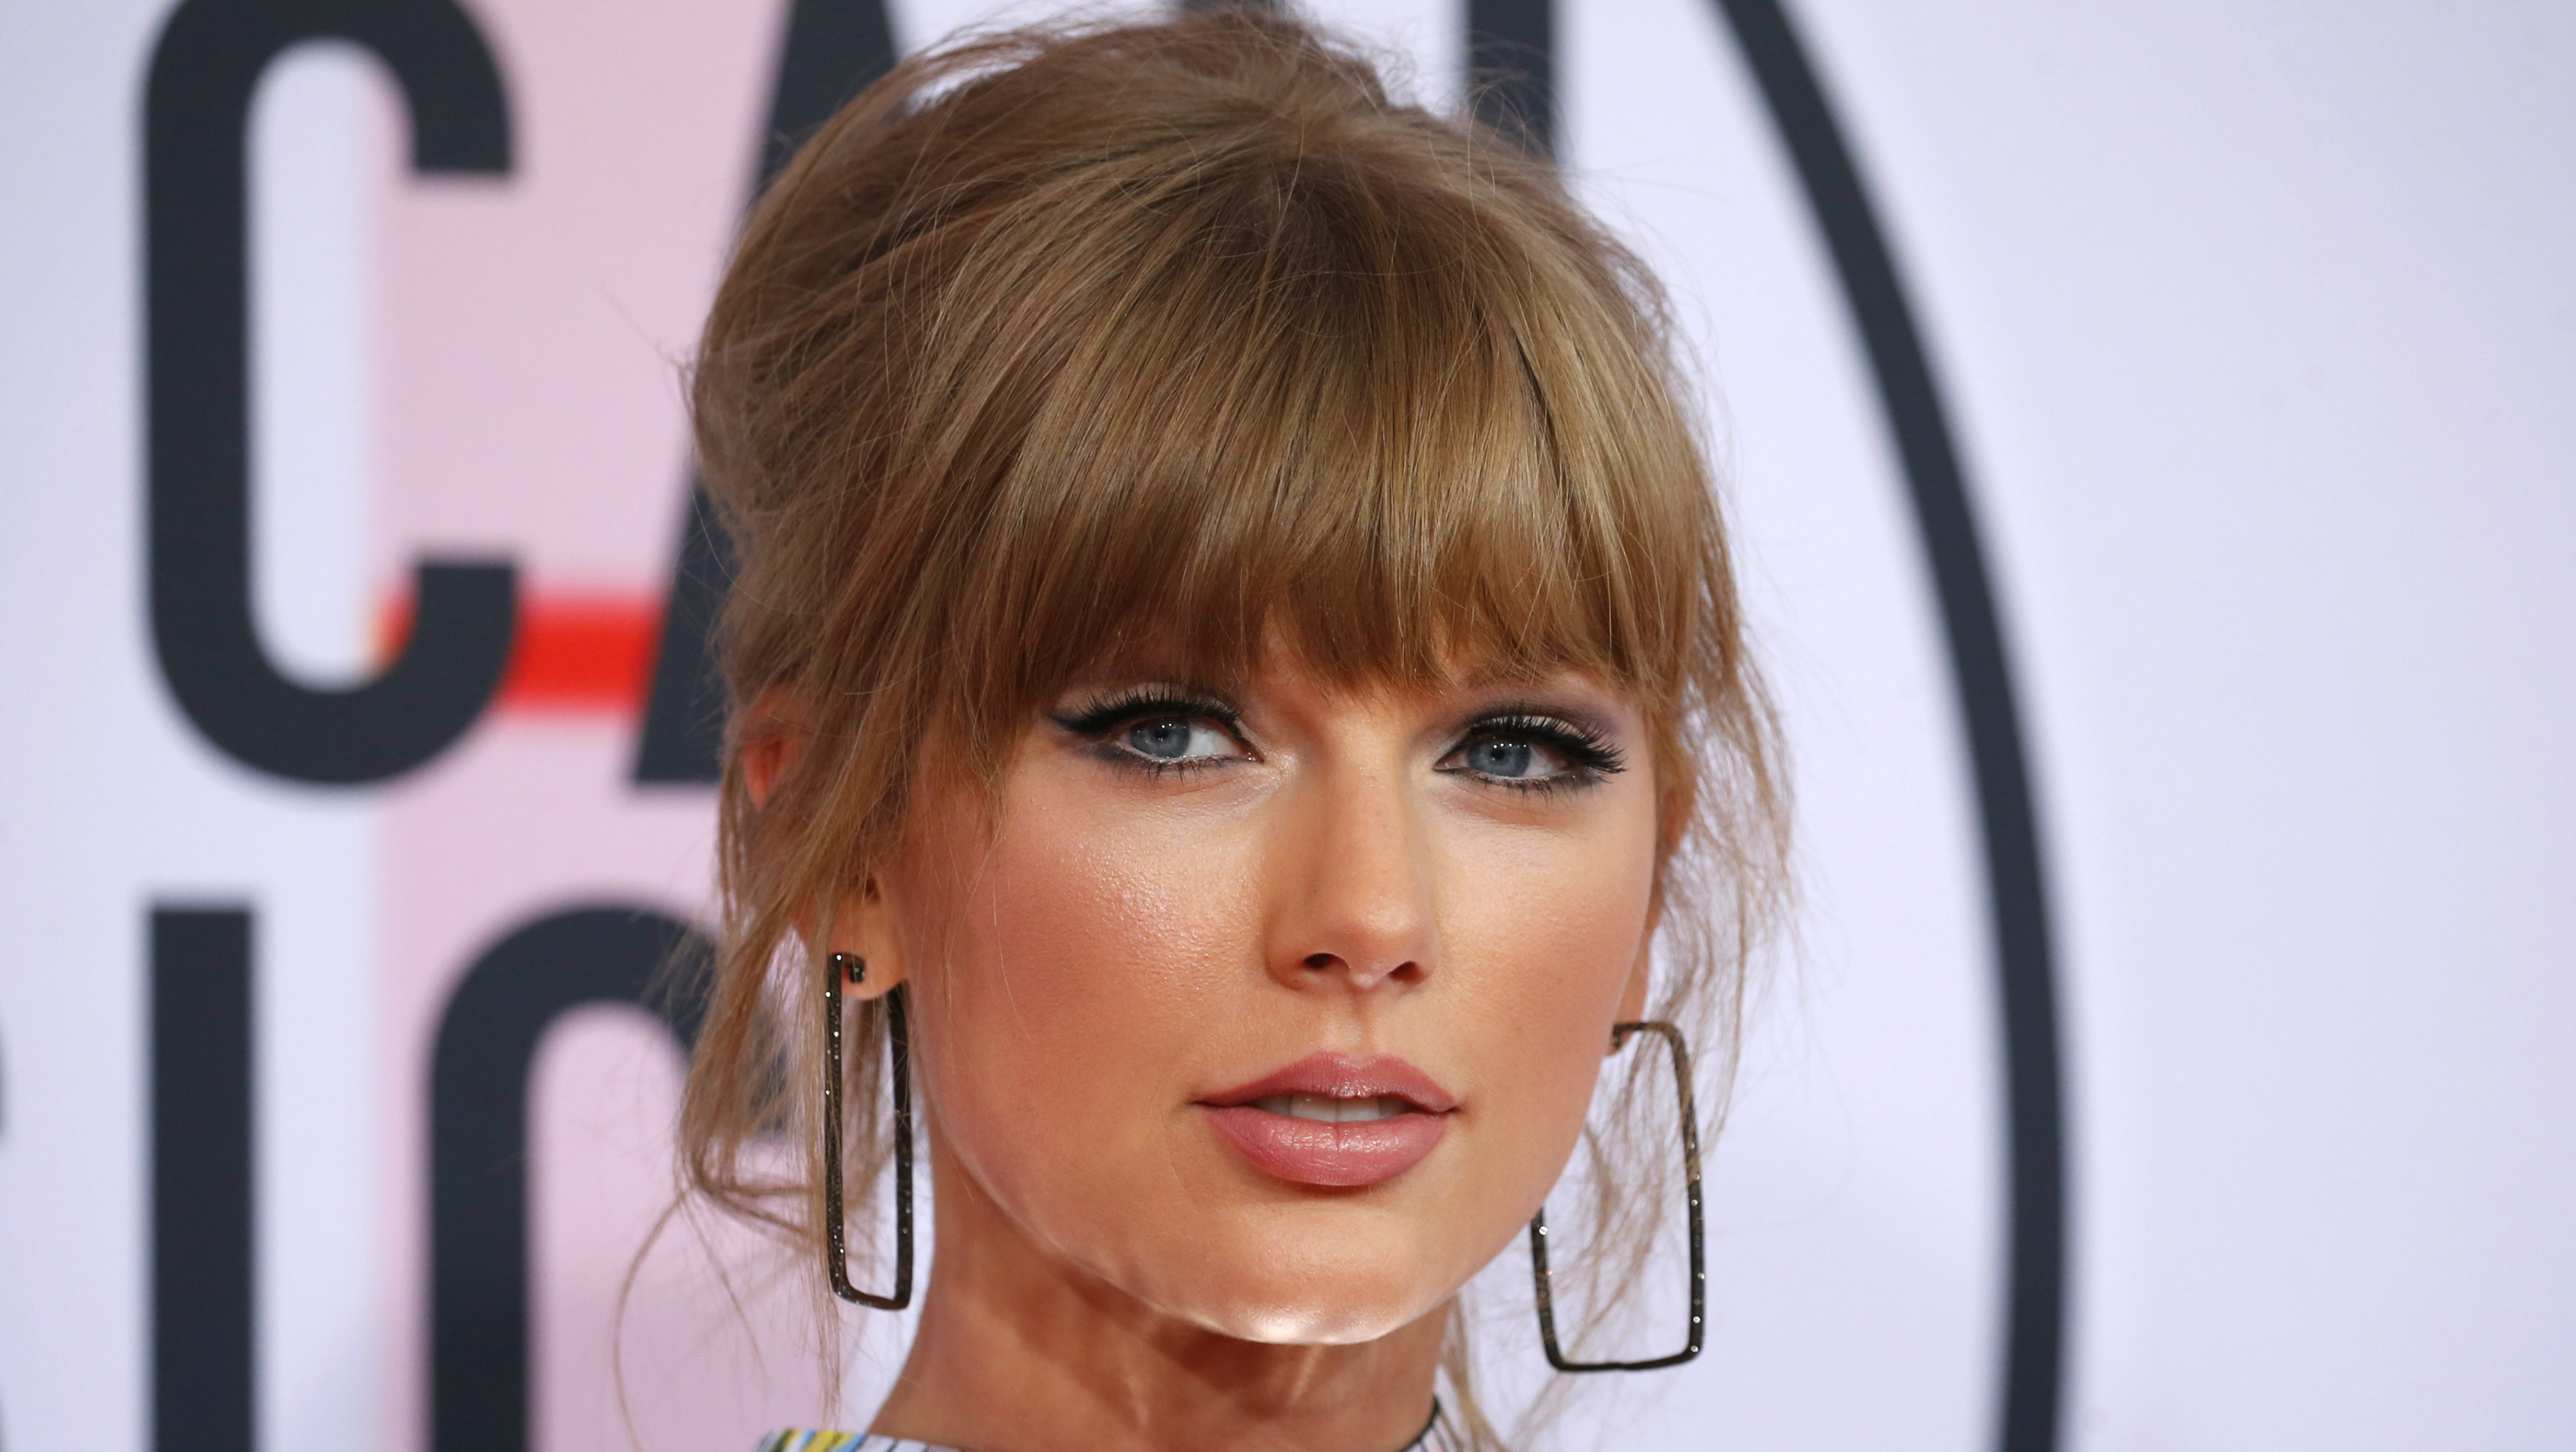 Live Nation ticket scandal shows musicians can learn from Taylor Swift | Quartzy